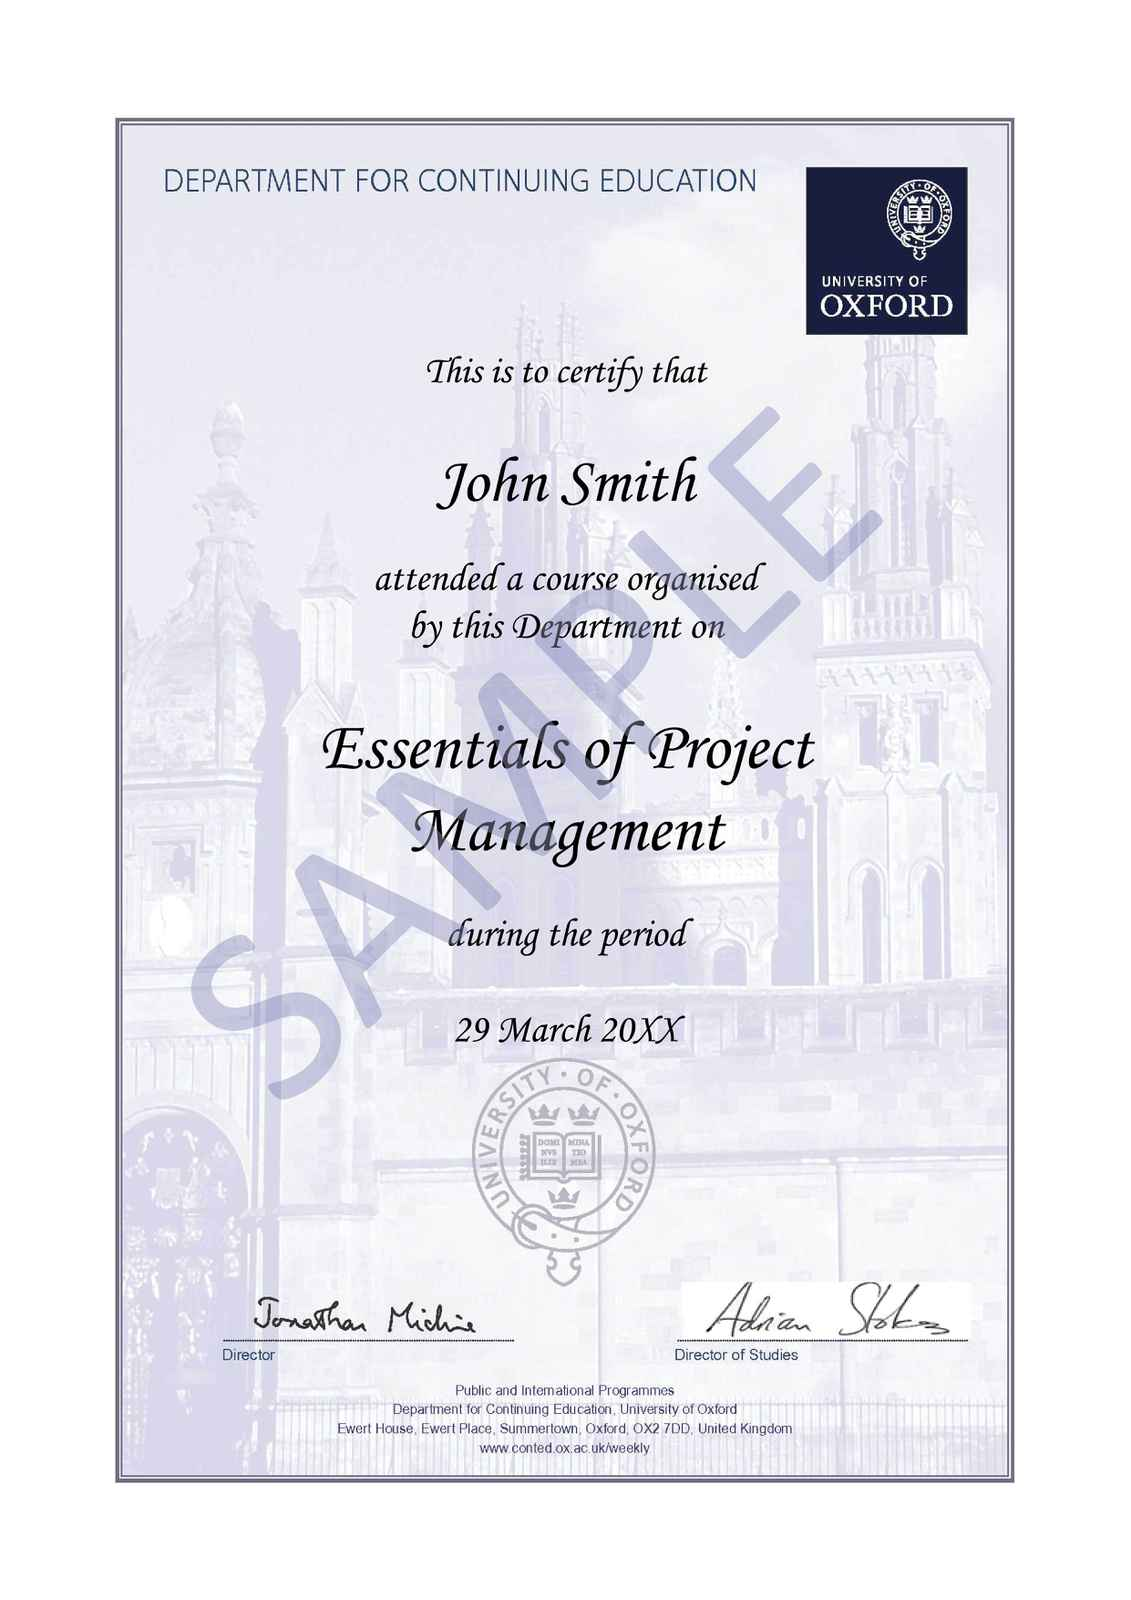 Essentials of project management oxford university department certification xflitez Image collections